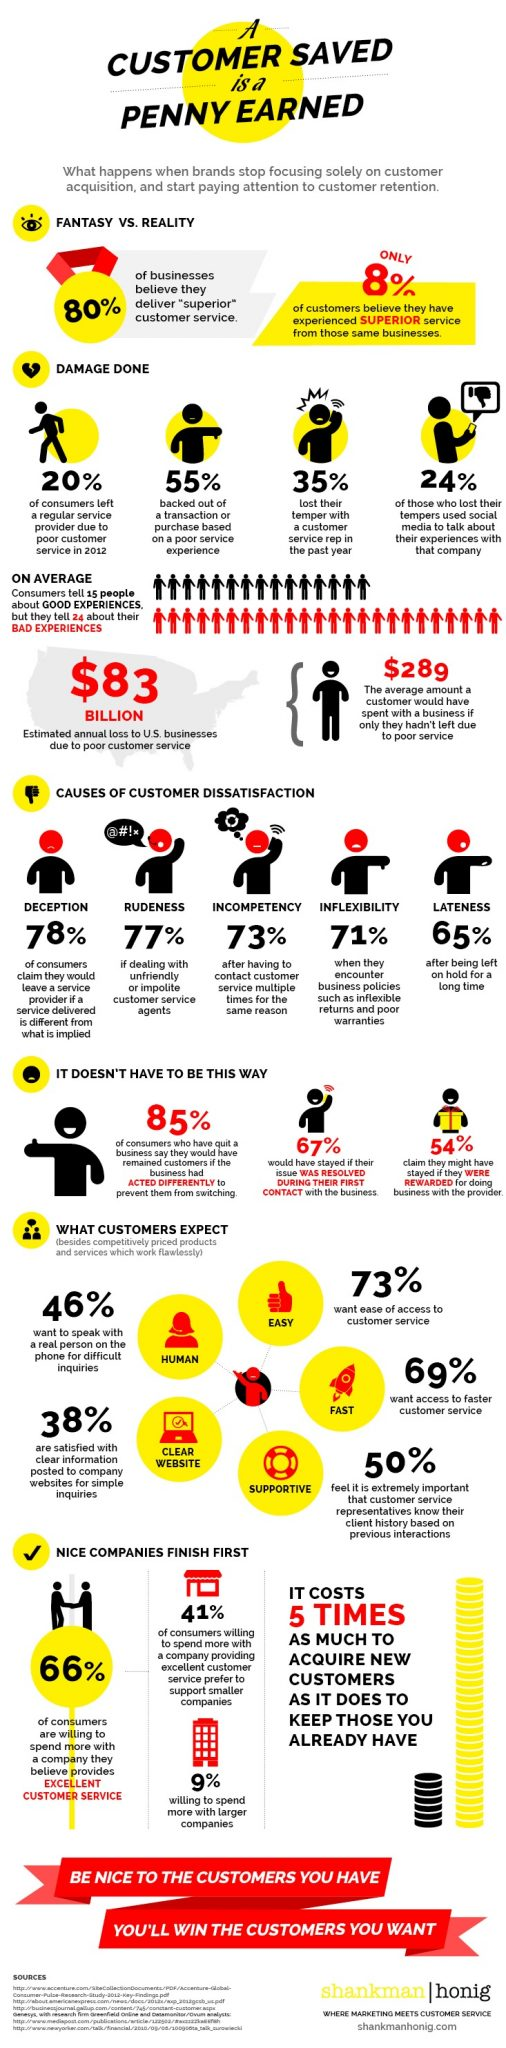 Customer Saved is a Penny Earned Infographic